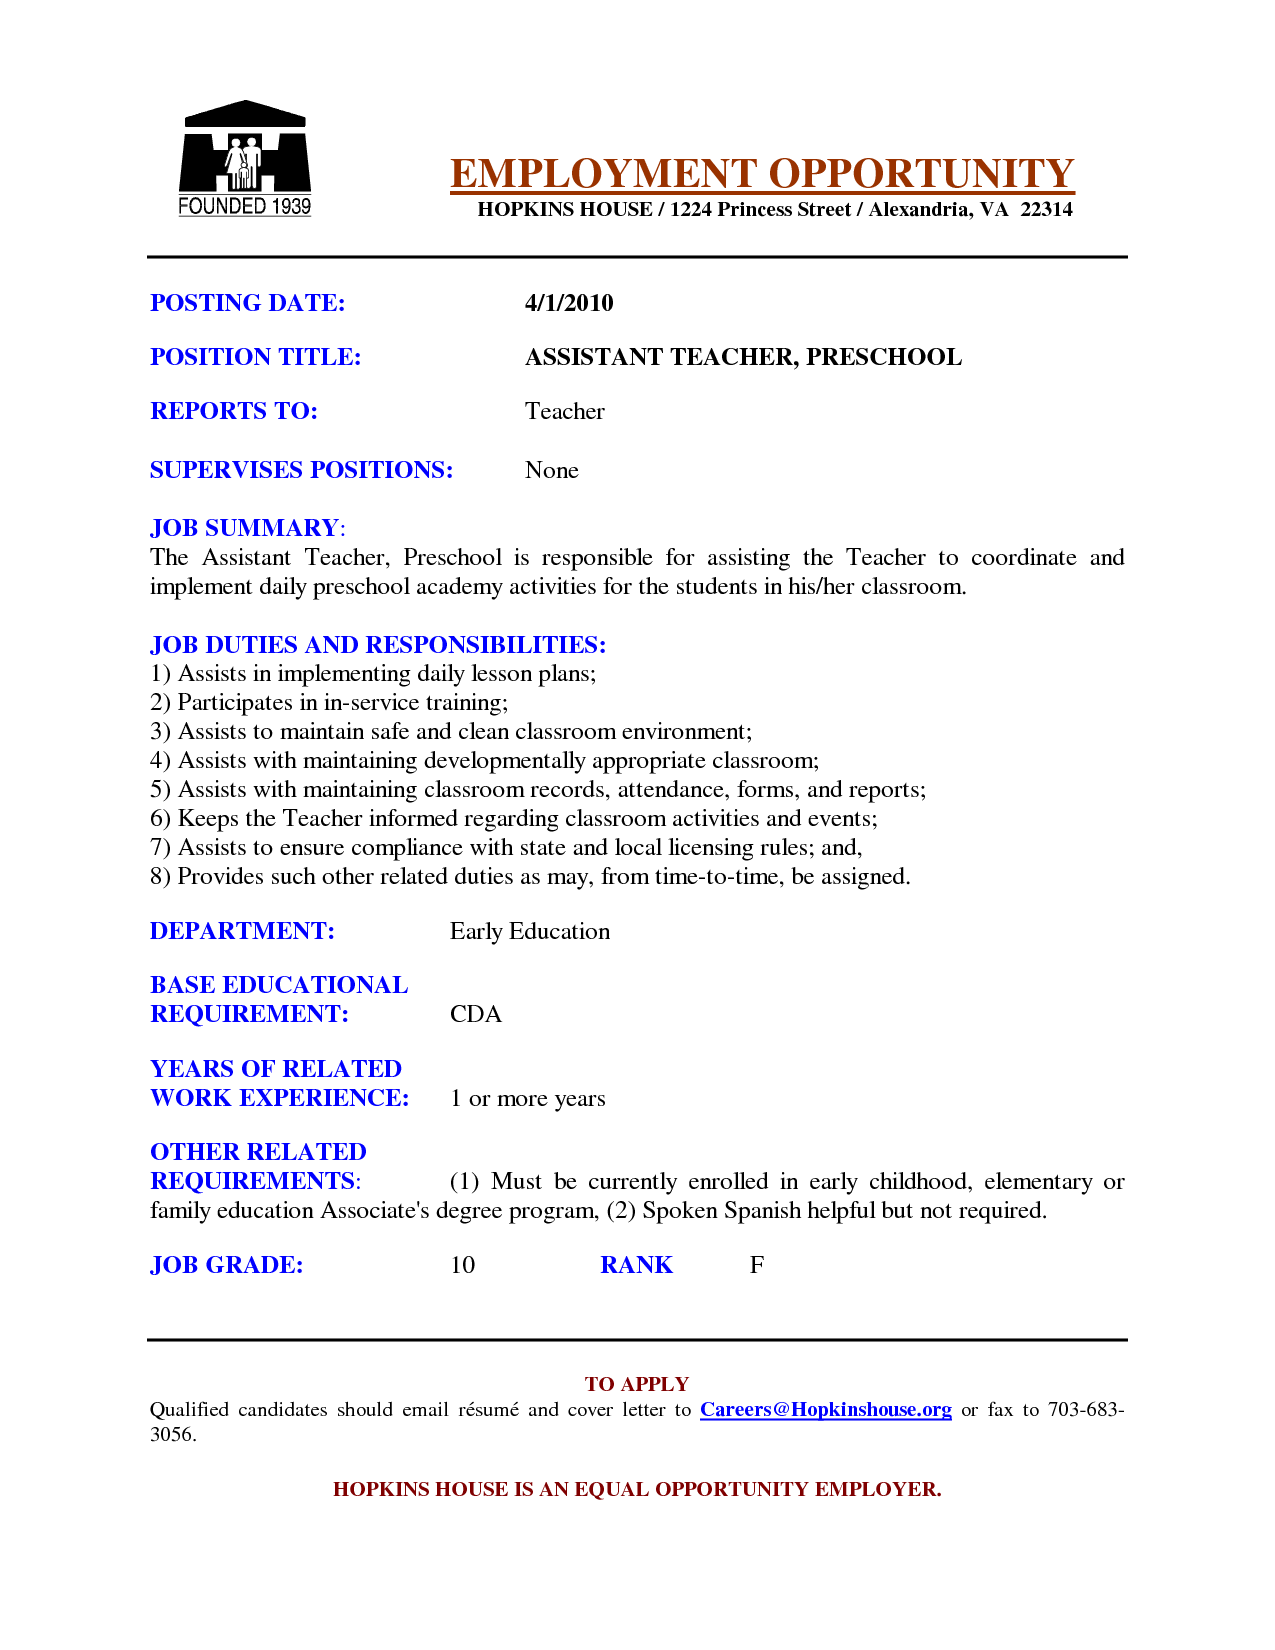 Academic Resume Template Preschool Assistant Teacher Resume Examples  Google Search